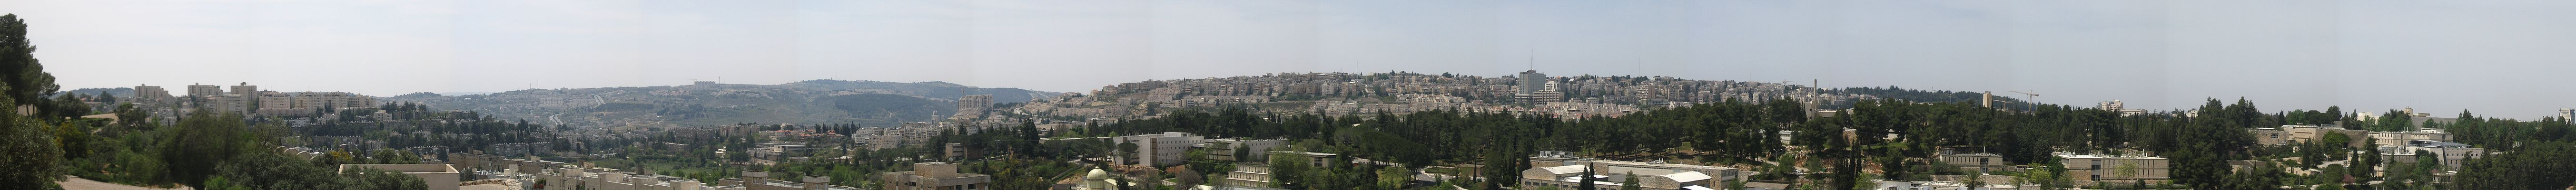 A Panorama of West Jerualem, as seen from the Israel Museum.